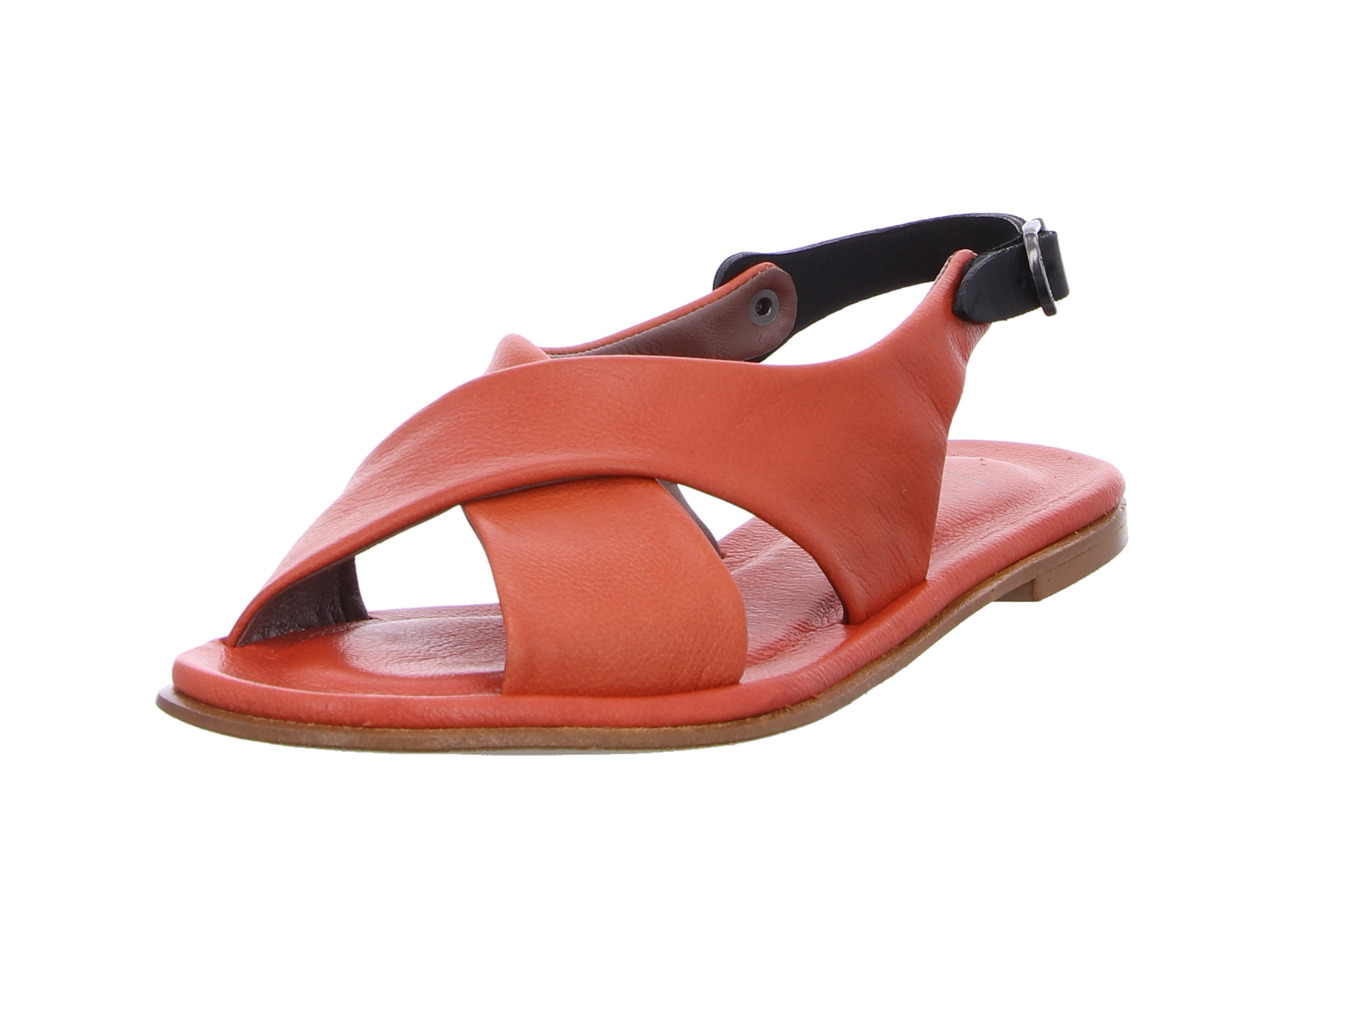 lilimill_d_sandalen_allg_rot_6829_coral_1128